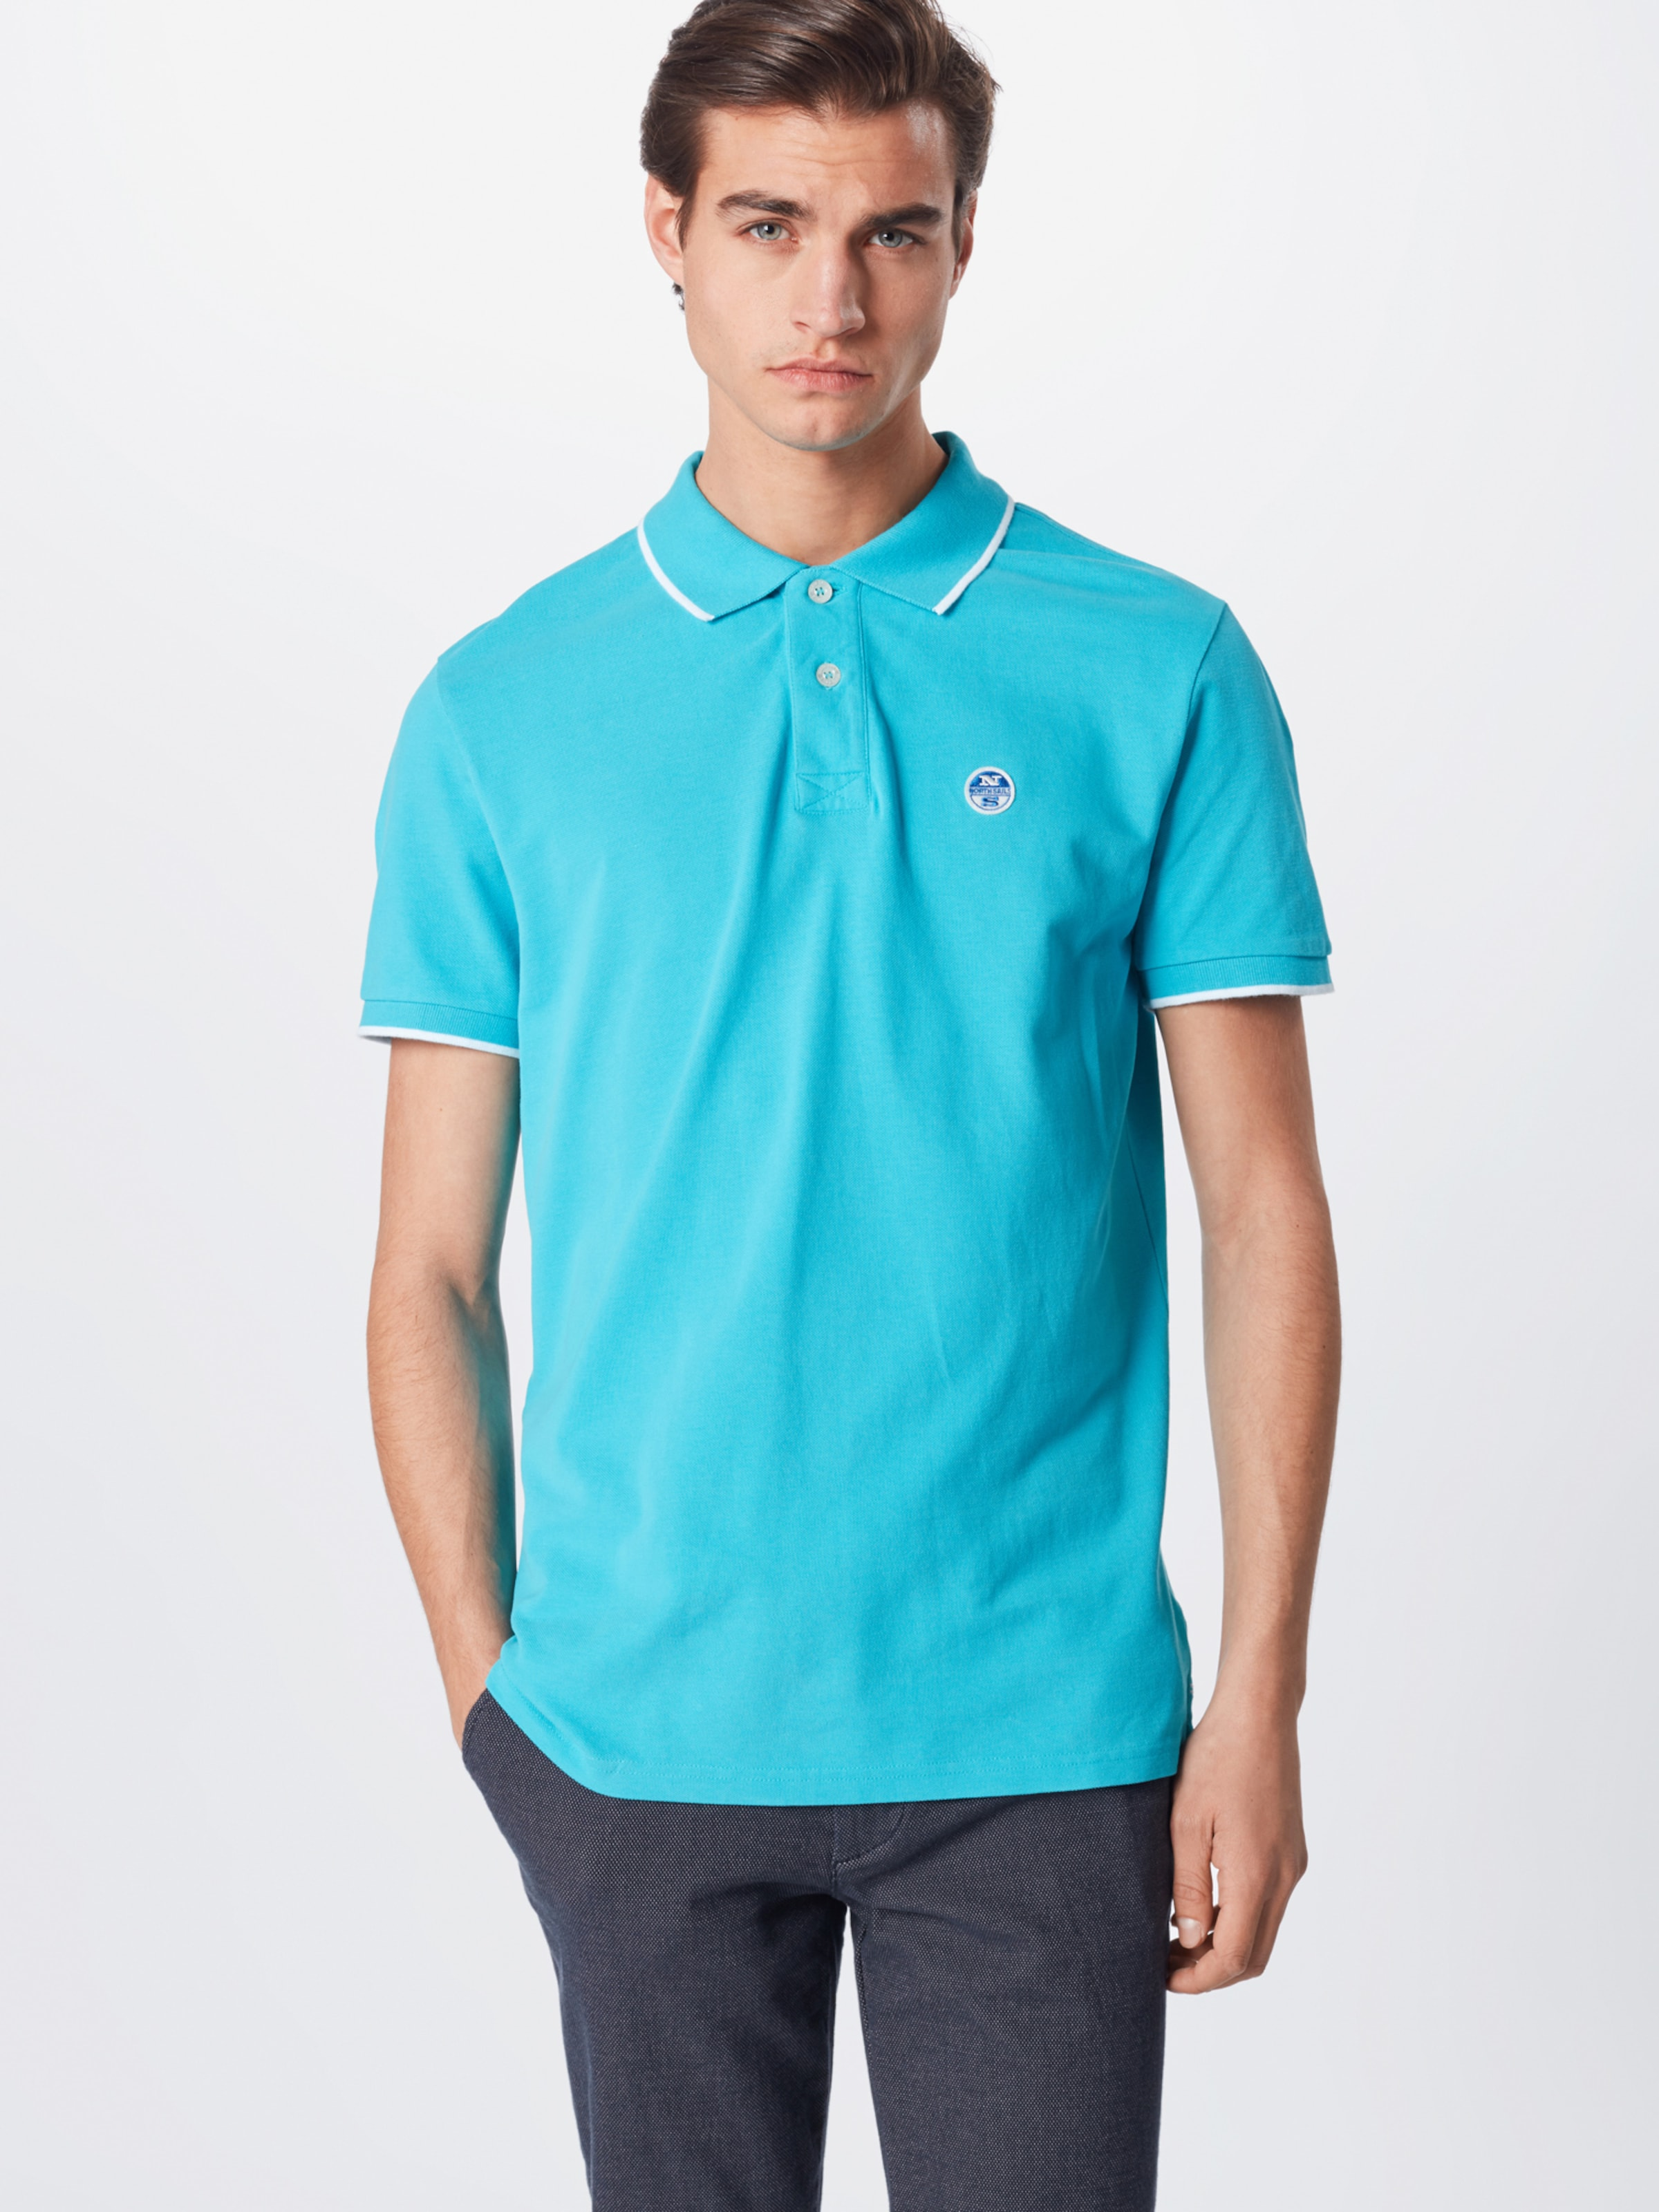 s 'polo graphic' S North Shirt W Sails In Blau rBCxoed